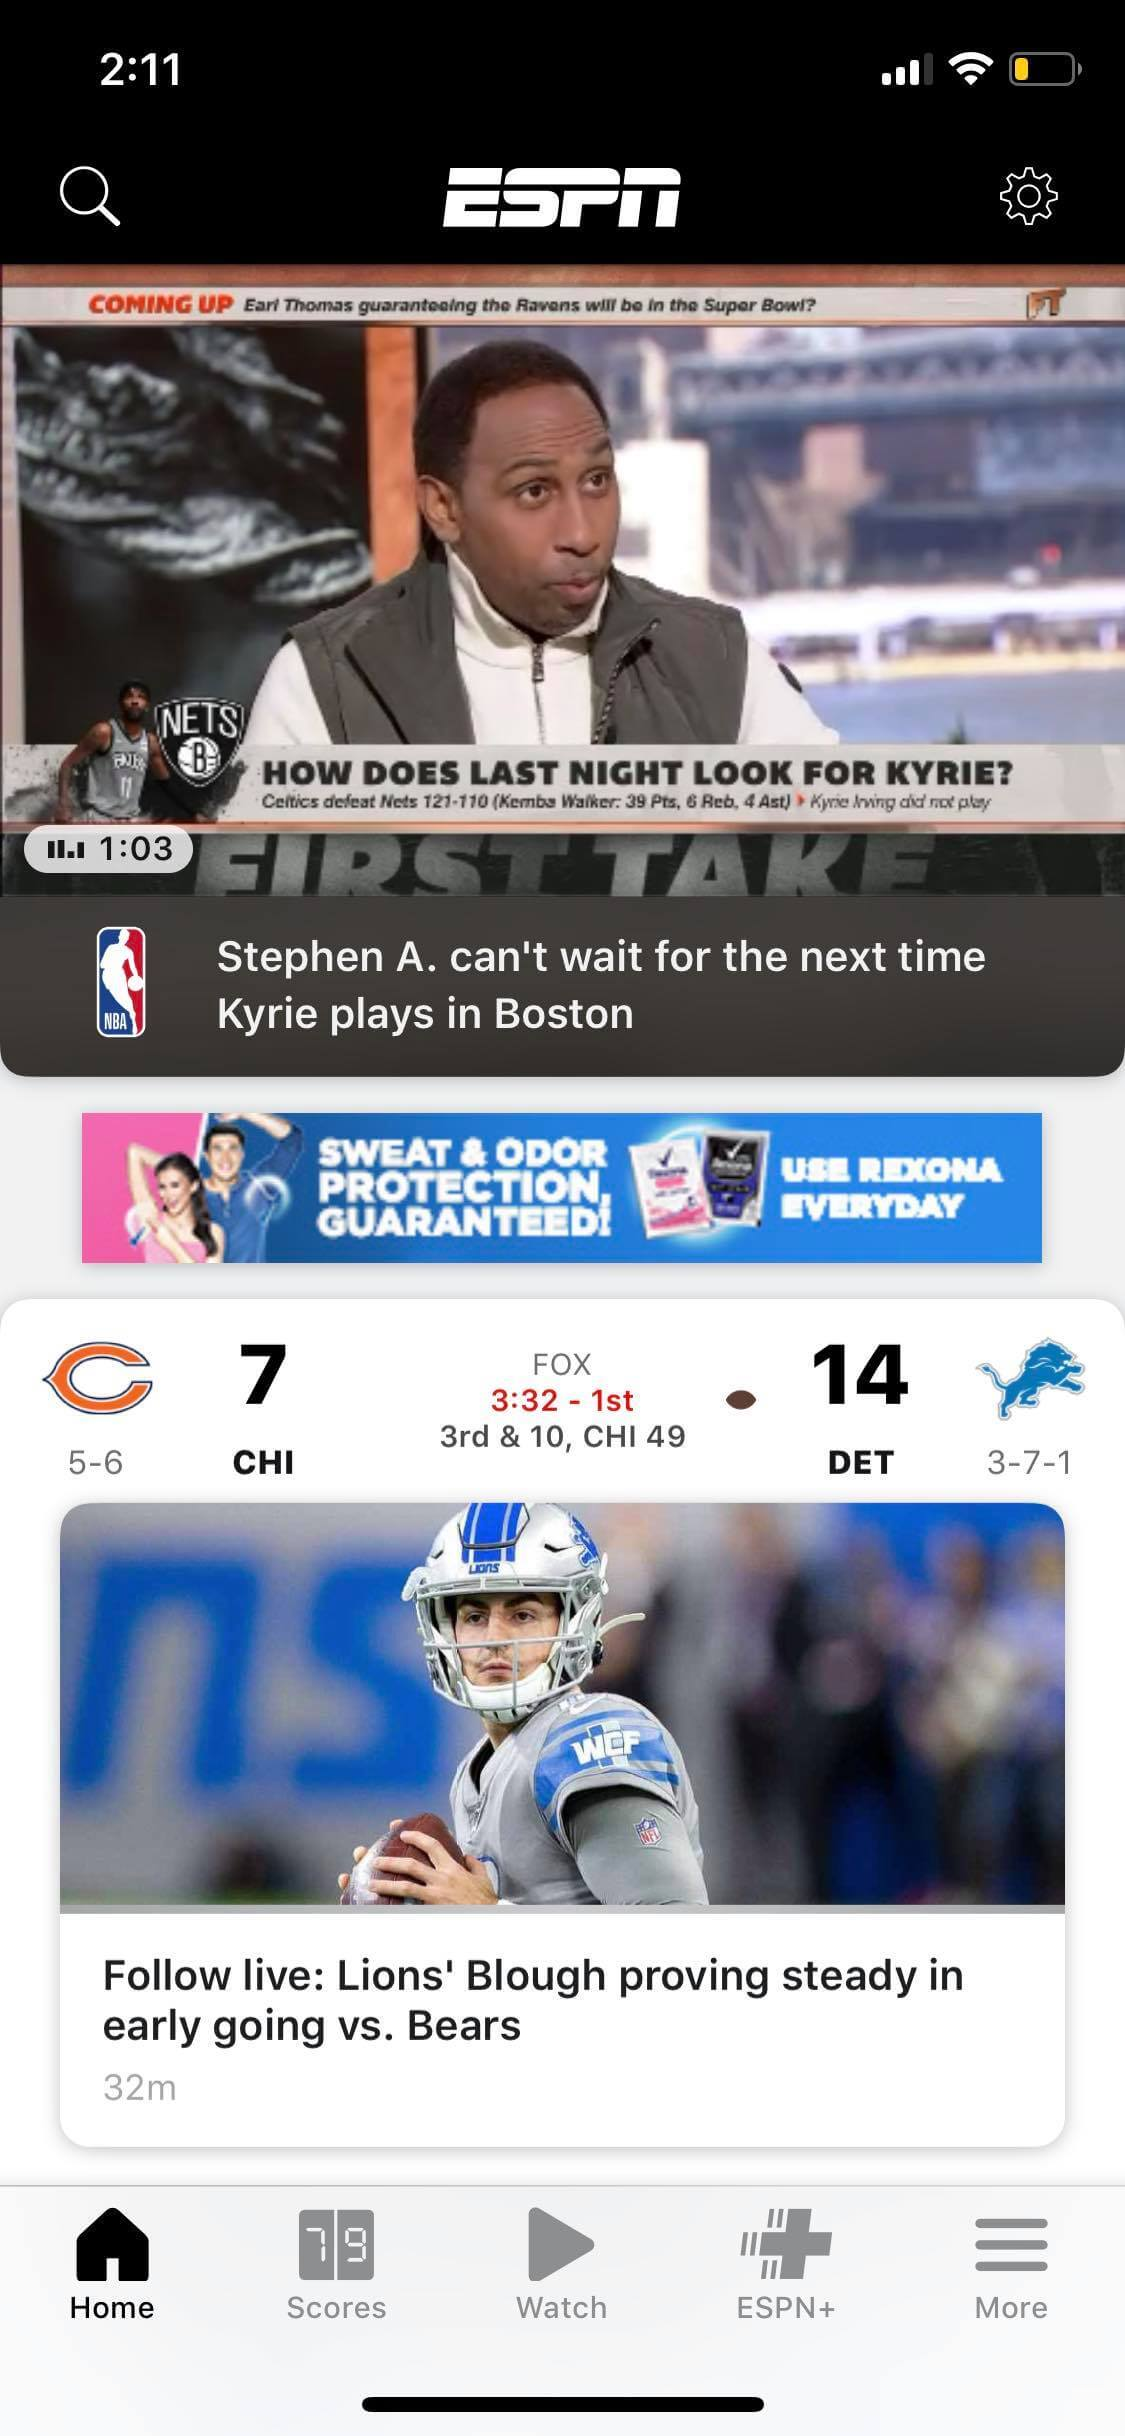 Home on iOS by ESPN